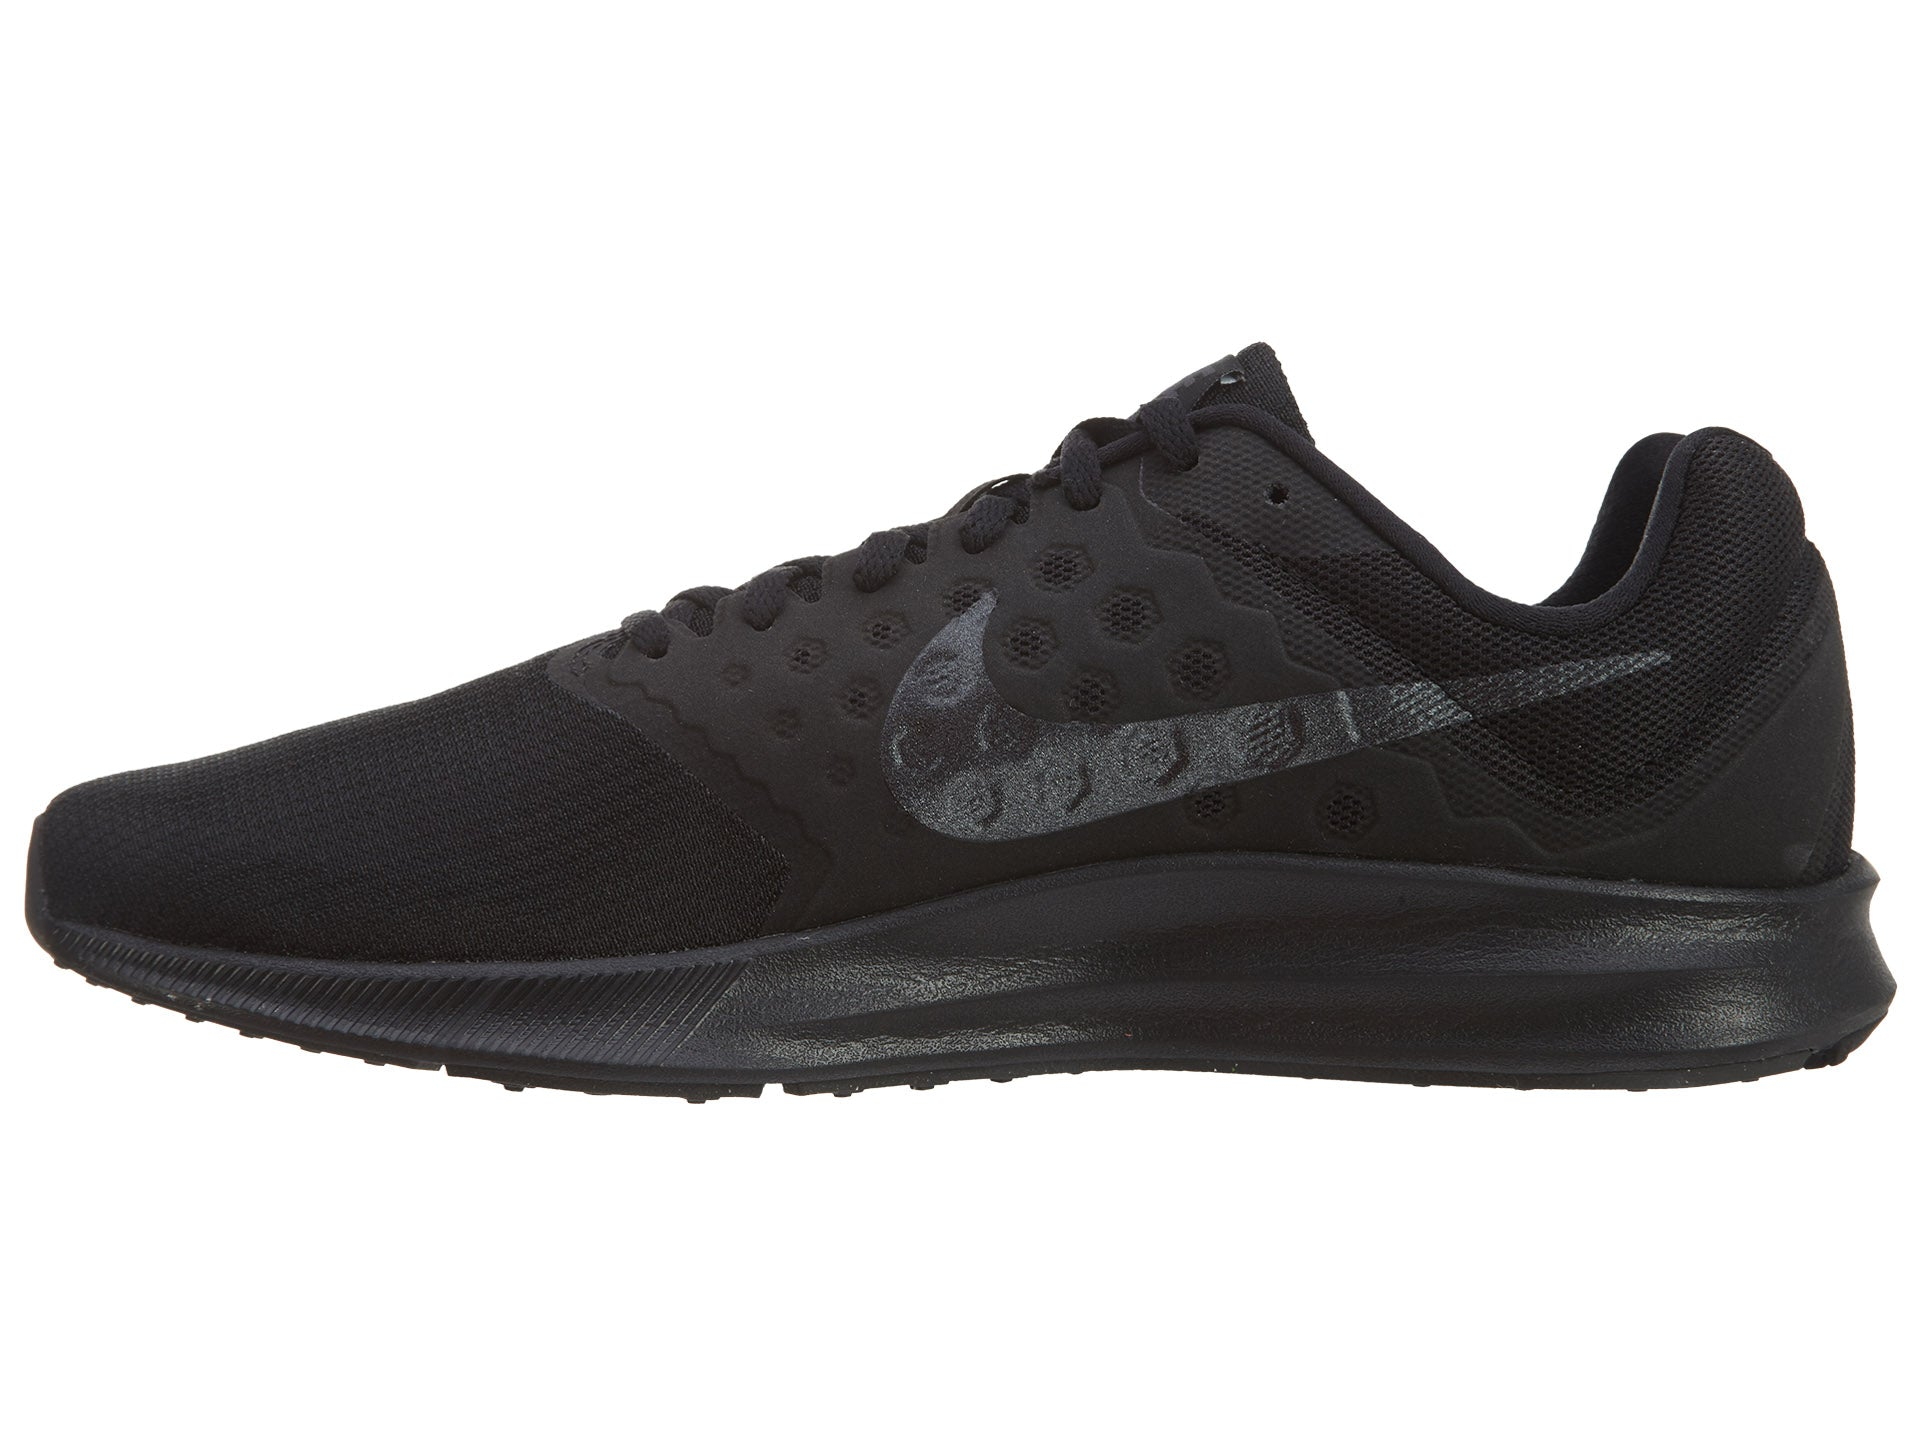 the latest 329a4 e74c1 Nike Downshifter 7 Mens Style   852459